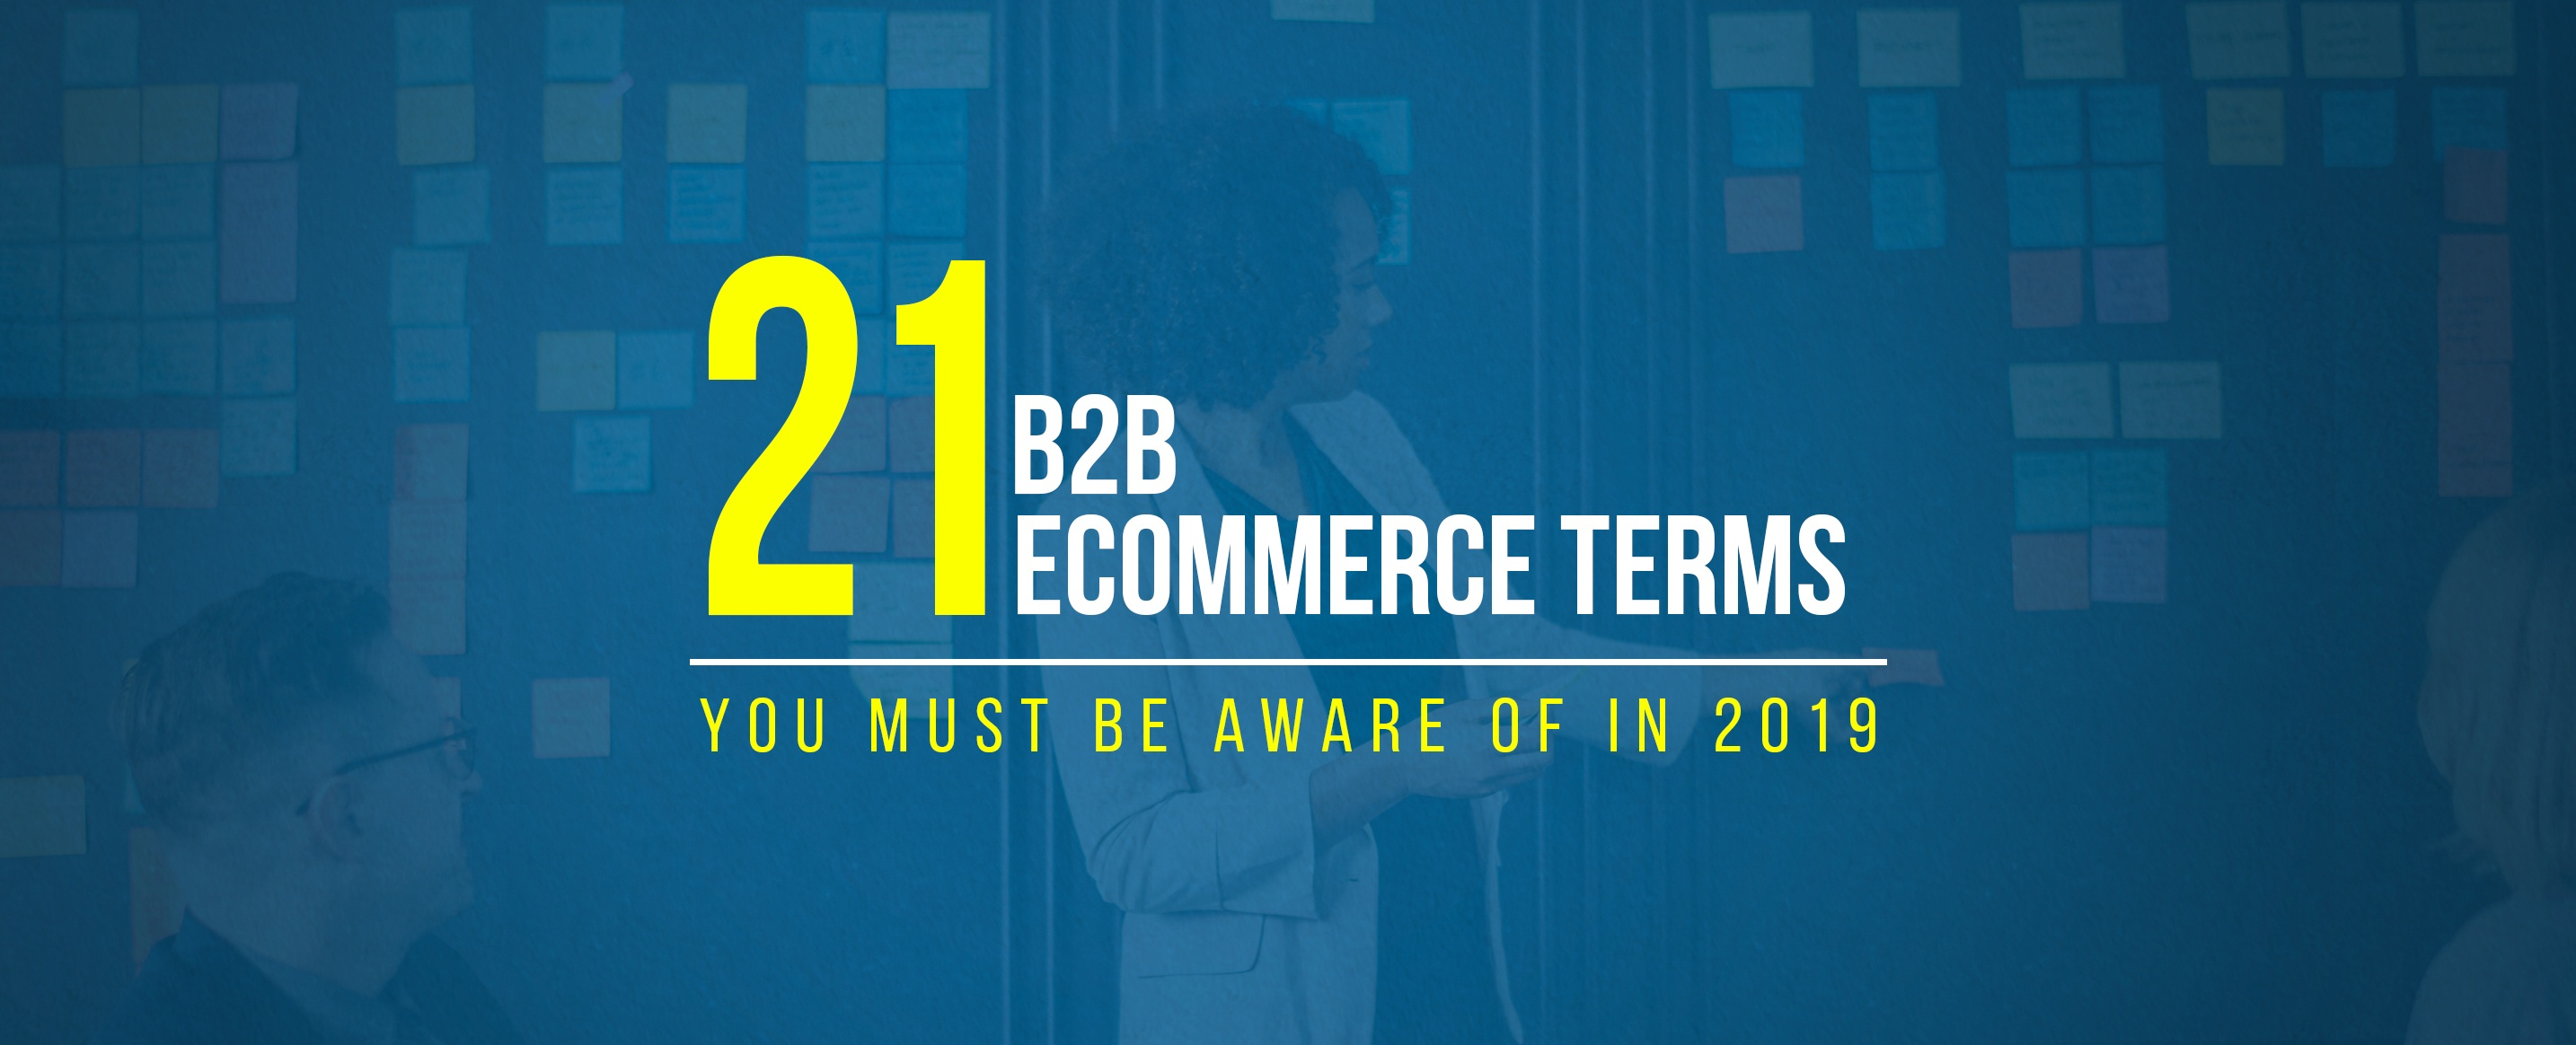 B2B-Ecommerce-Terms-You-Must-be-Aware-of-in-2019